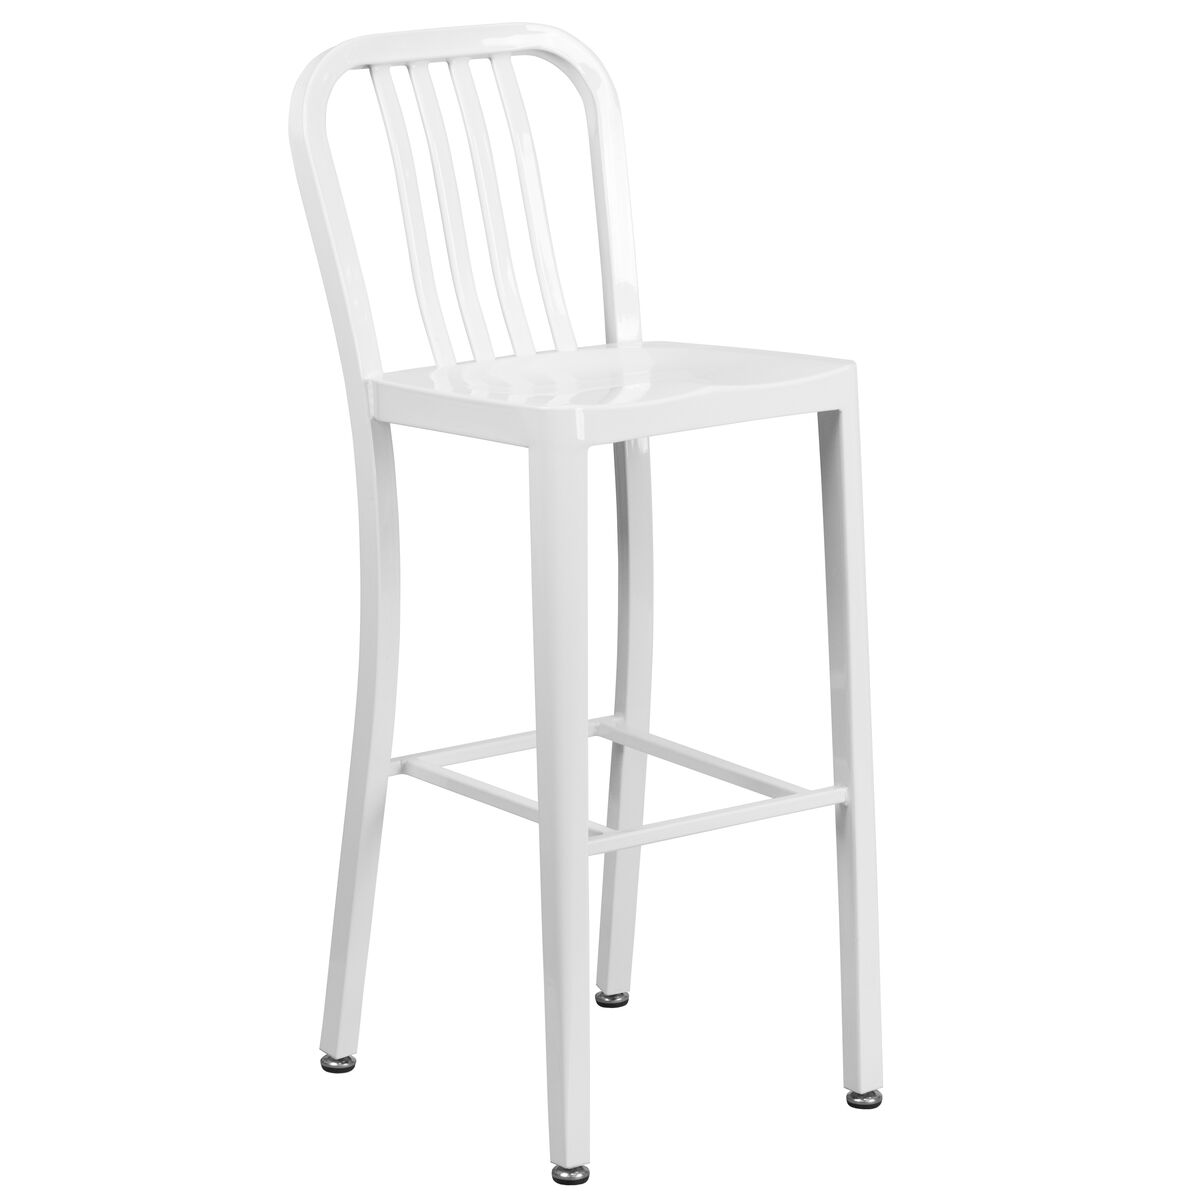 30 white metal outdoor stool ch 61200 30 wh gg for Furniture 4 schools